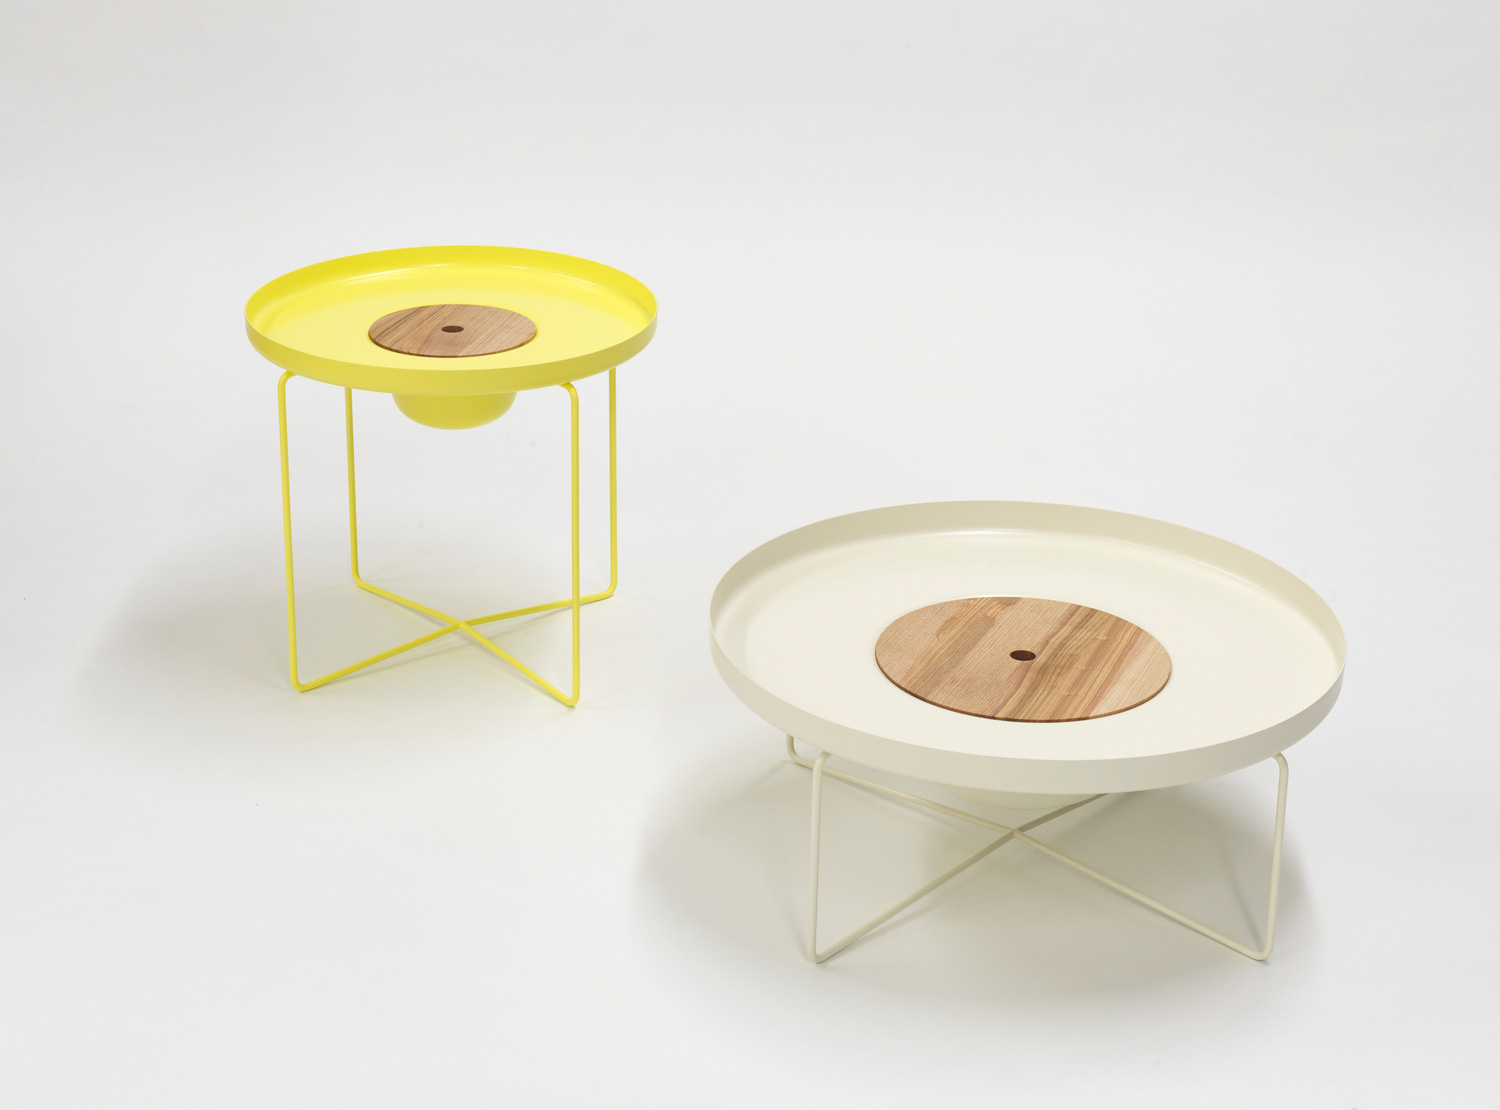 Table & Bowl by Aust & Amelung, part of Objects in between Exhibition at IMM Cologne 2015 | Yellowtrace